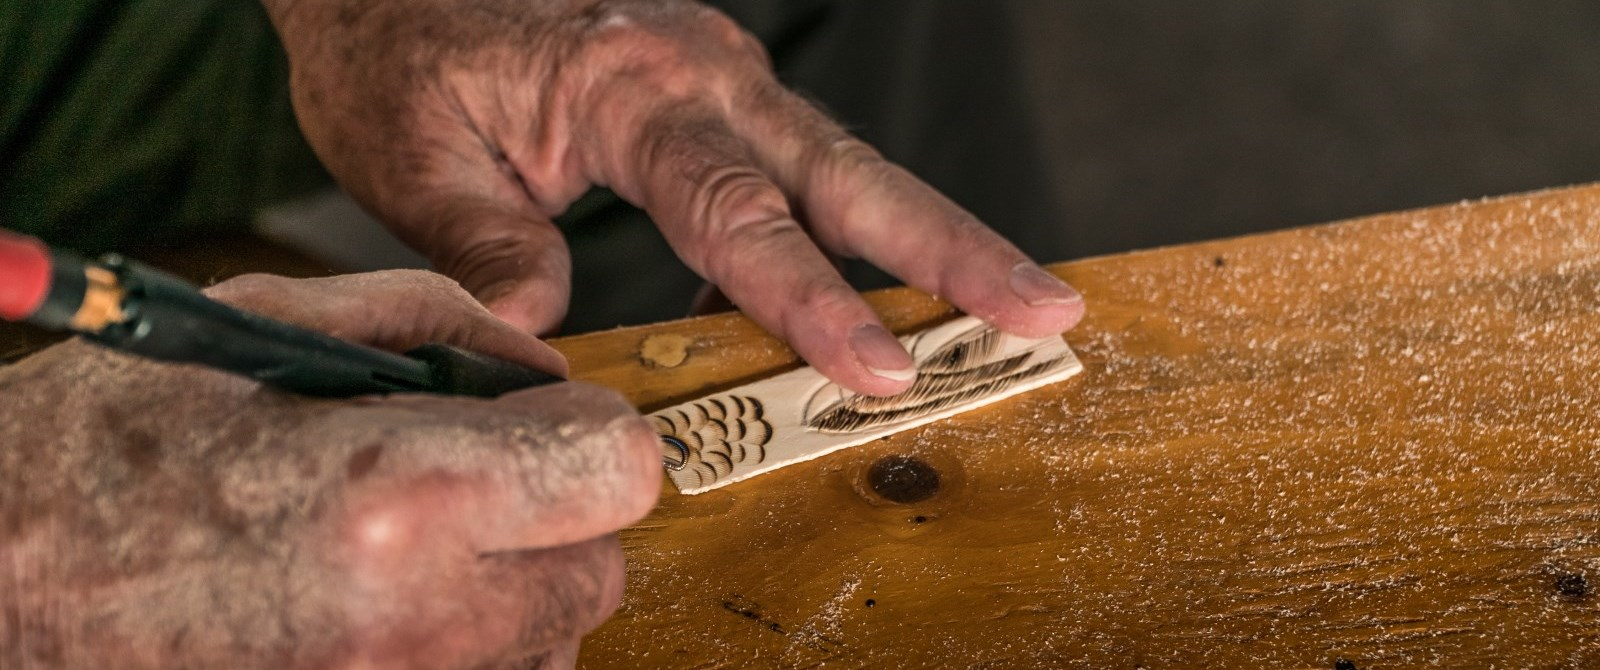 hands carving a piece of wood